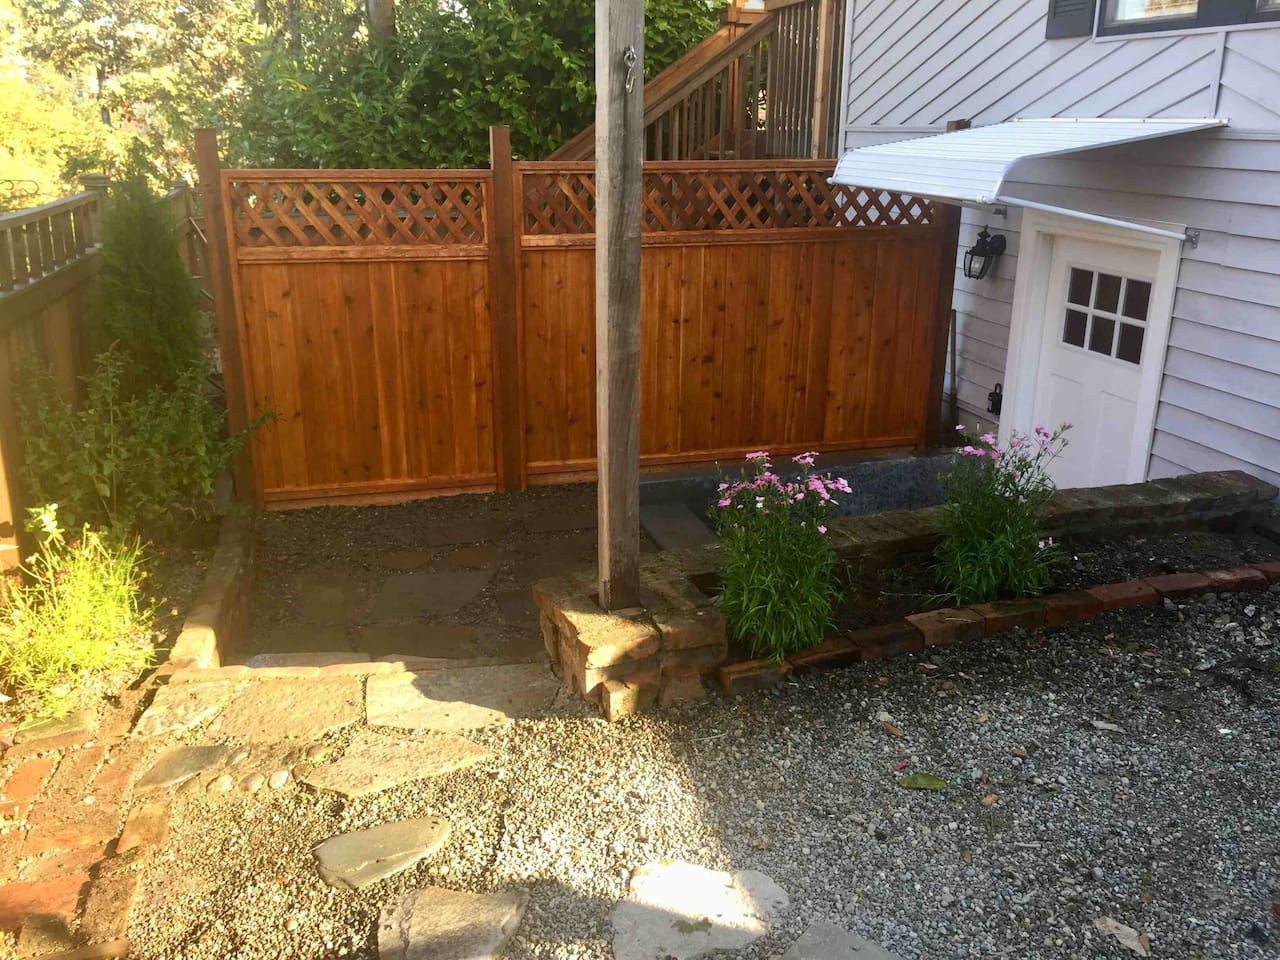 private entrance and patio in enclosed side yard